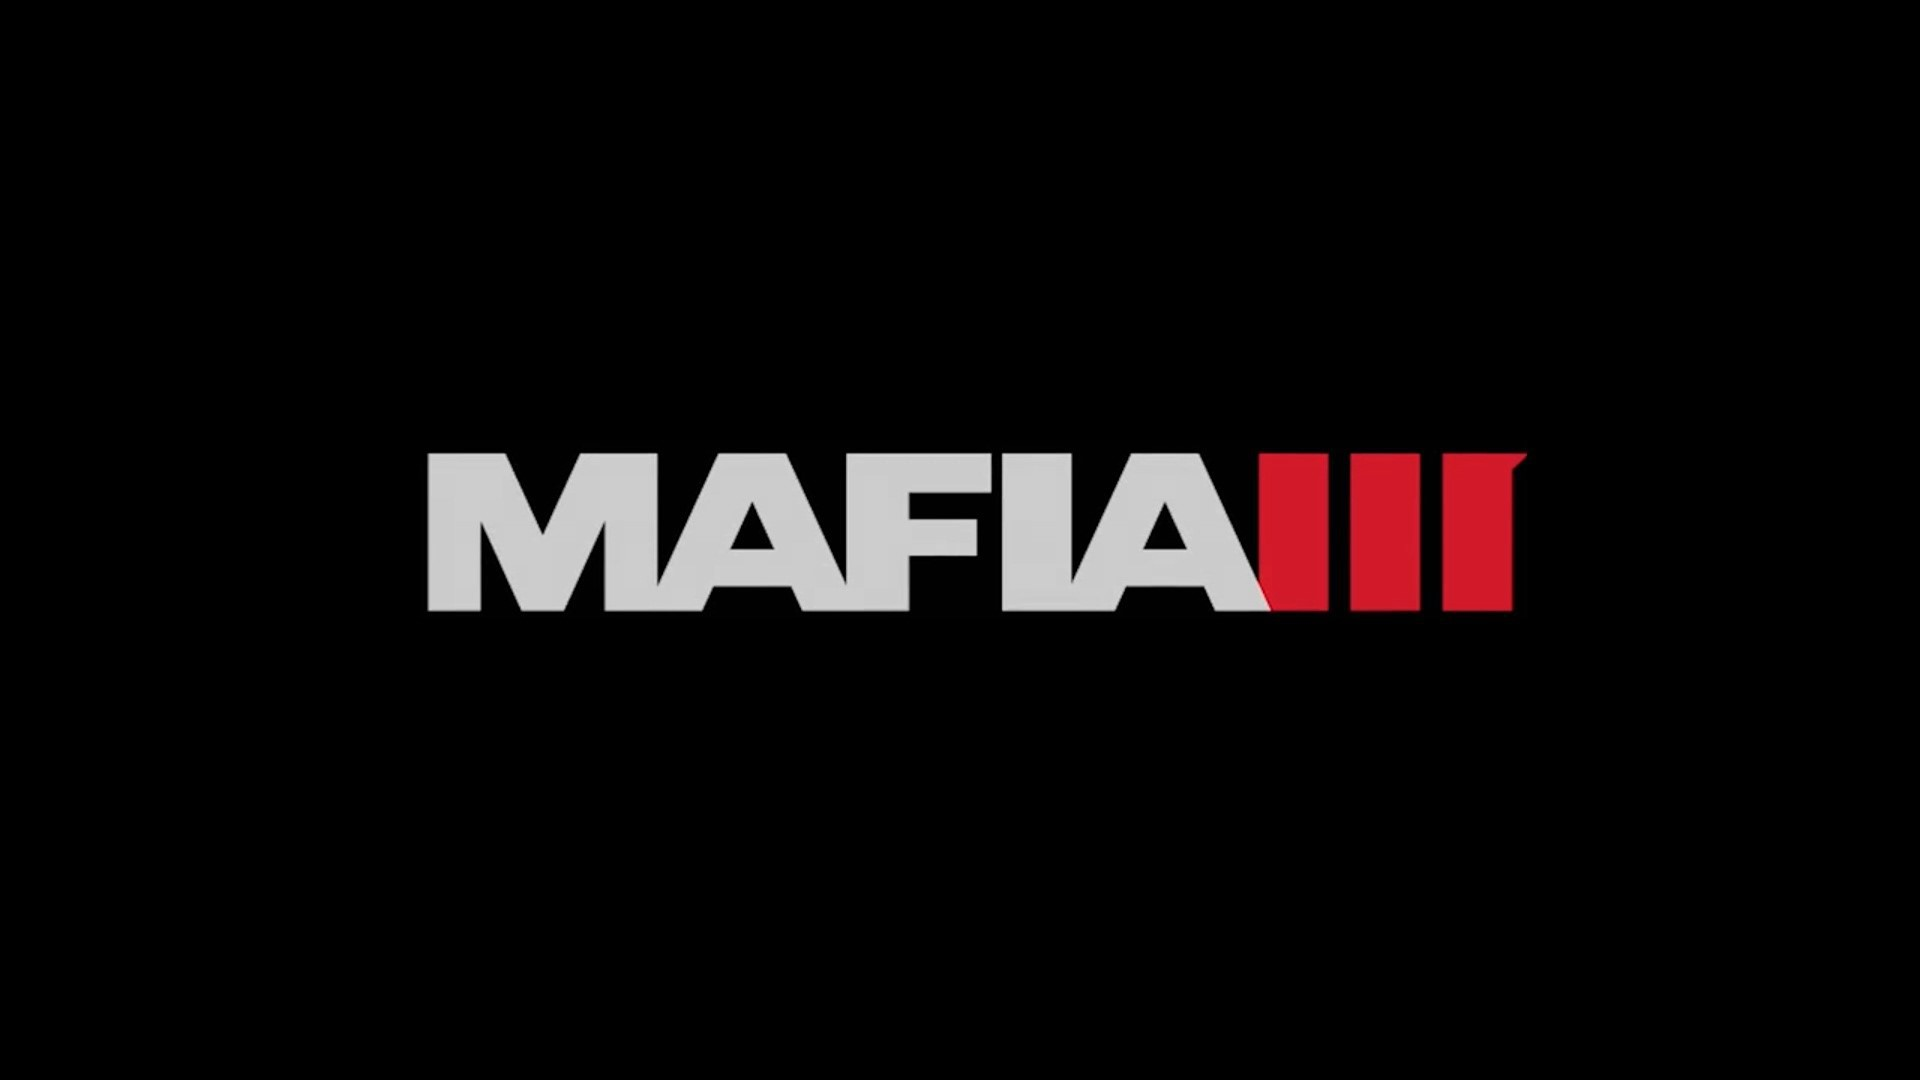 Mafia 3 Wallpapers 2